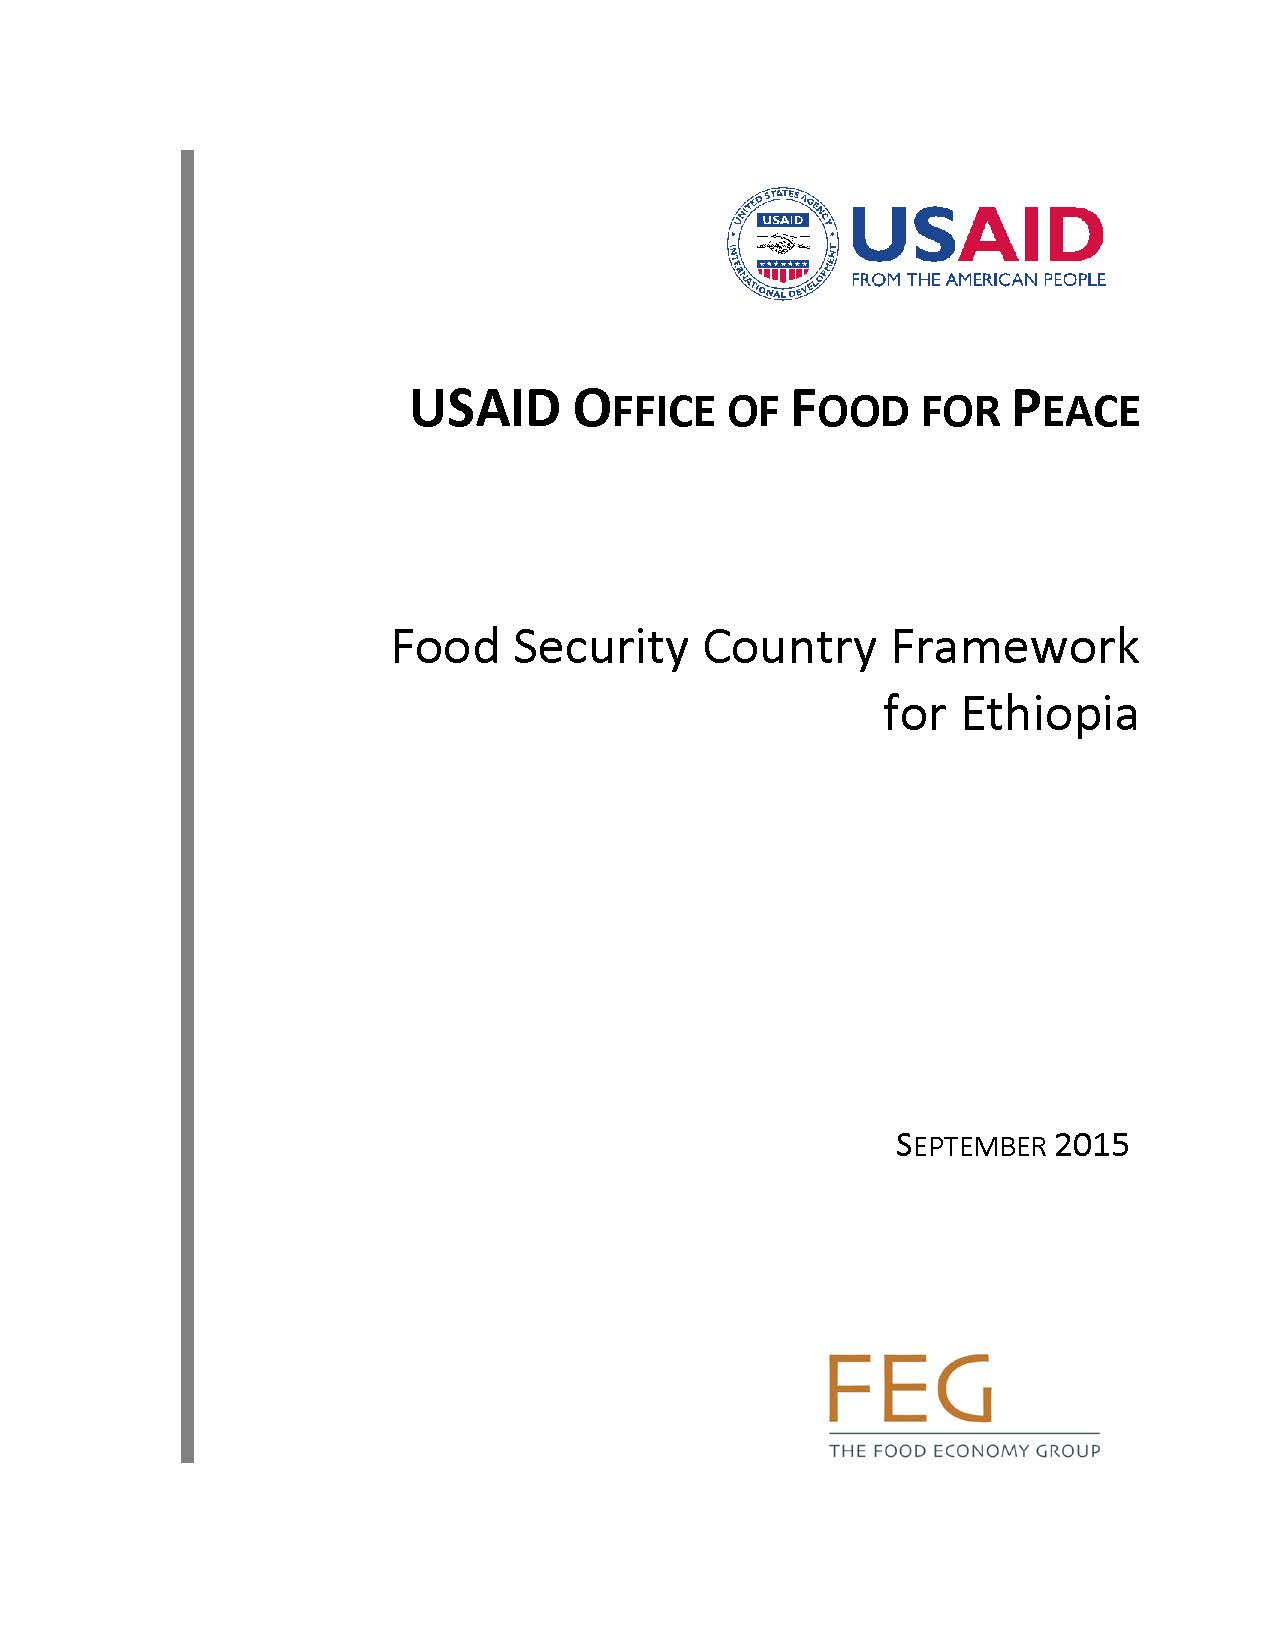 Food Security Country Framework for Ethiopia